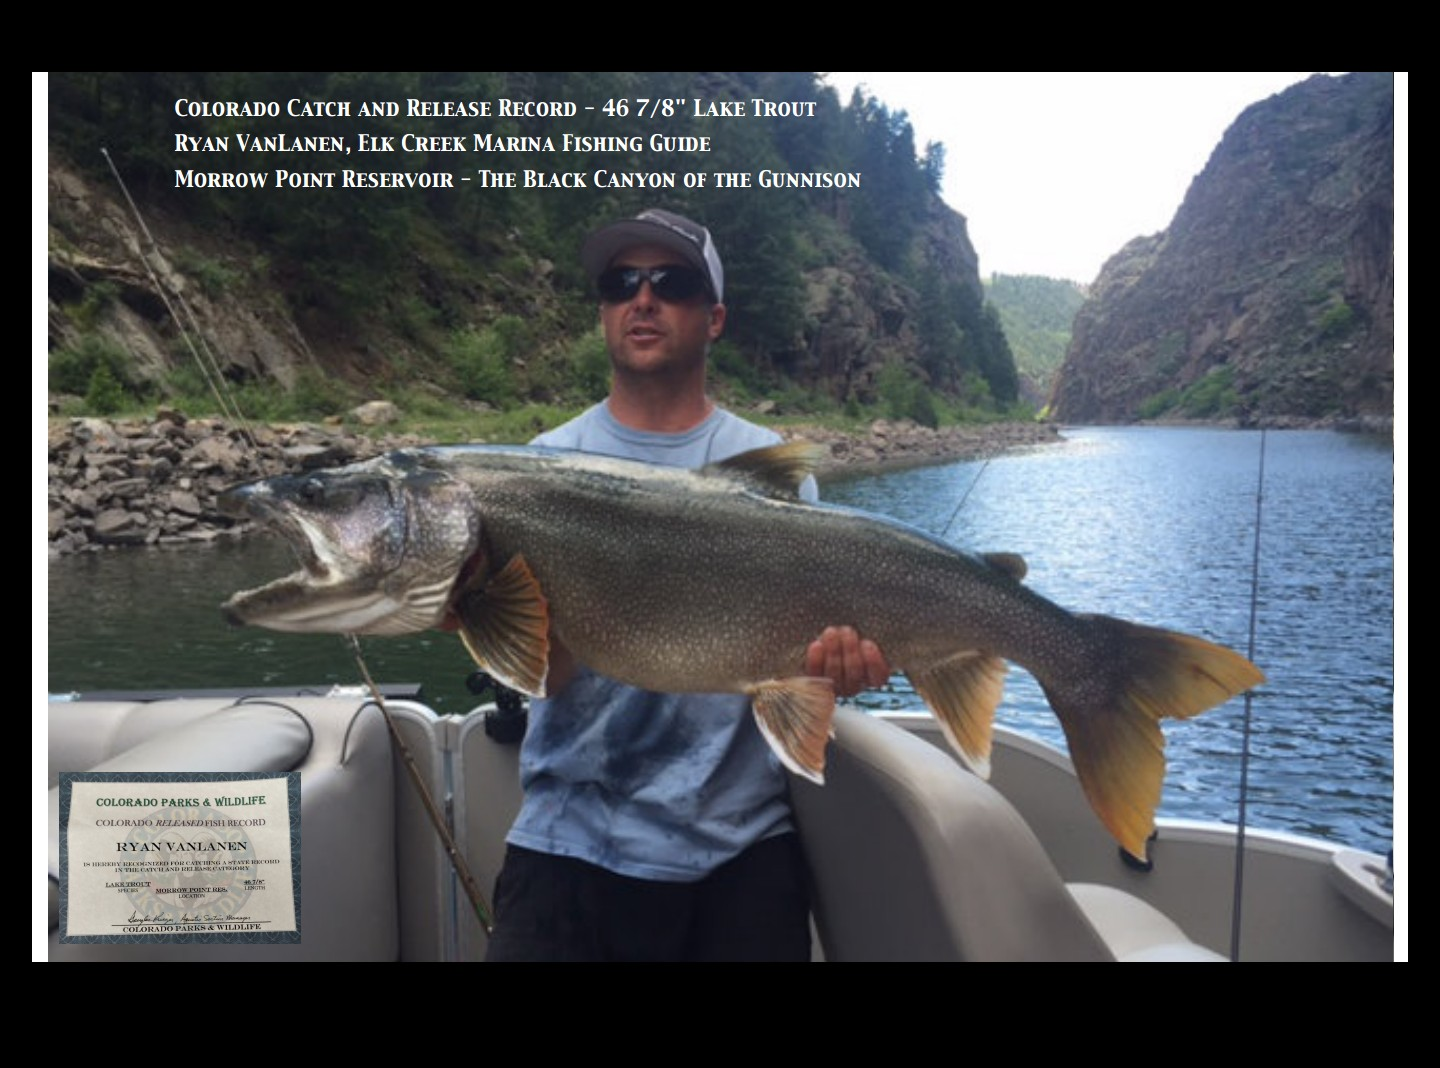 Colorado State Release Record at Morrow Point